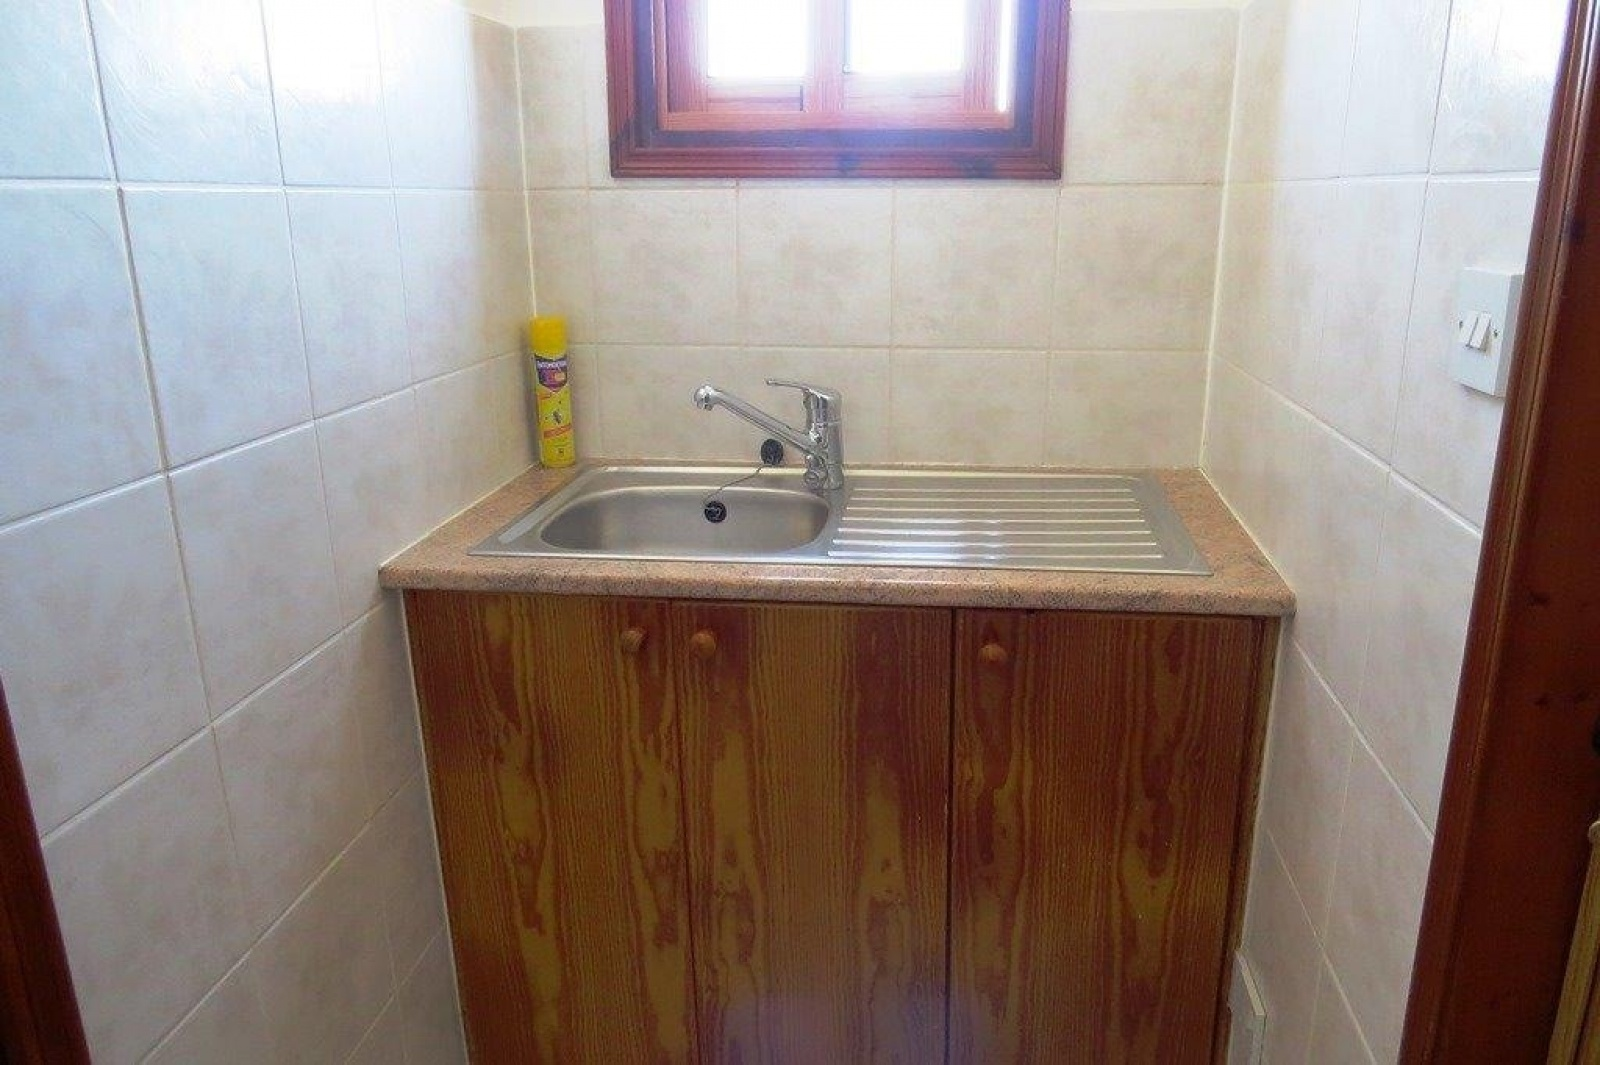 Residential Detached House - 2 bed Lysos Detached House for Sale